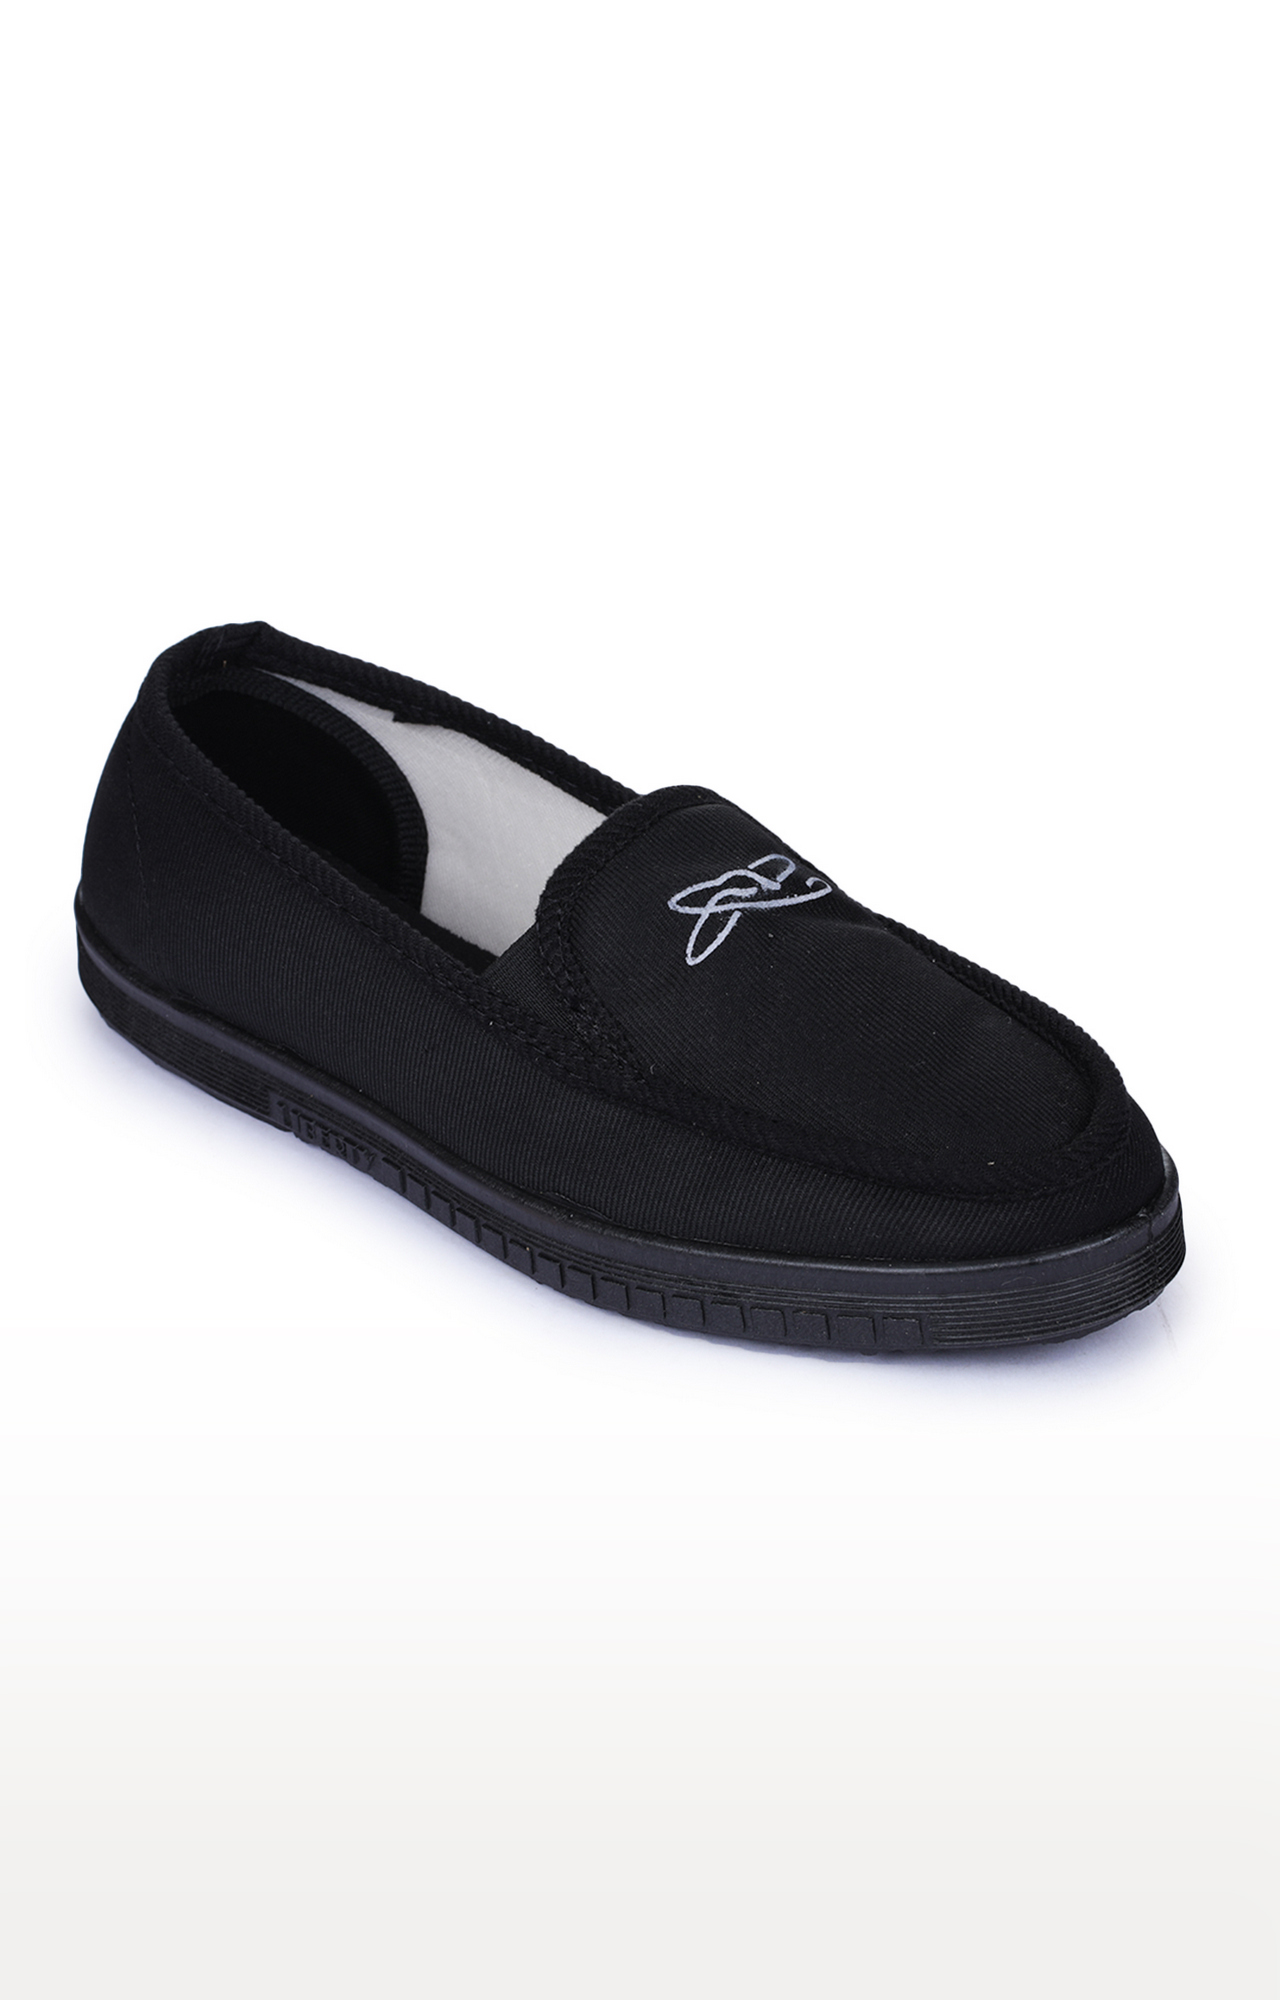 Liberty | Gliders by Liberty Black Casual Slip-ons